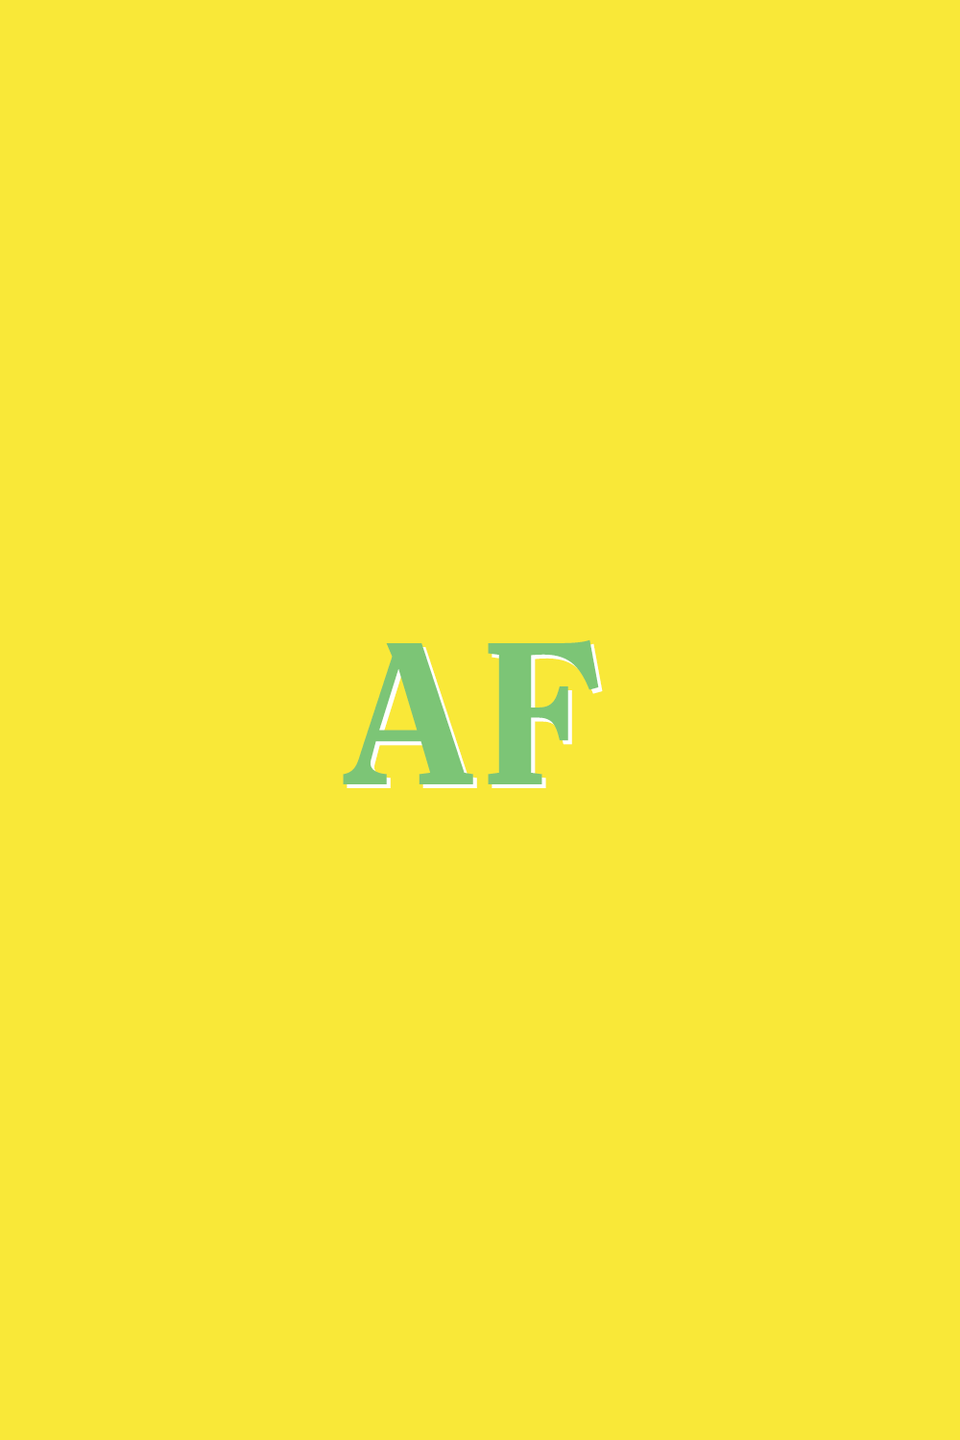 "<p>AF simply stands for ""as f*ck"" and comes in handy as a way of emphasizing something. A professor at the <a href=""https://stronglang.wordpress.com/2017/08/04/the-further-adventures-of-af/"" rel=""nofollow noopener"" target=""_blank"" data-ylk=""slk:University of North Carolina Chapel Hill"" class=""link rapid-noclick-resp"">University of North Carolina Chapel Hill</a> is believed to have documented its use by students as early as 2014, though it's been thrown around for much longer. Used in a sentence: ""My slice of pecan pie is delicious AF.""<br></p>"